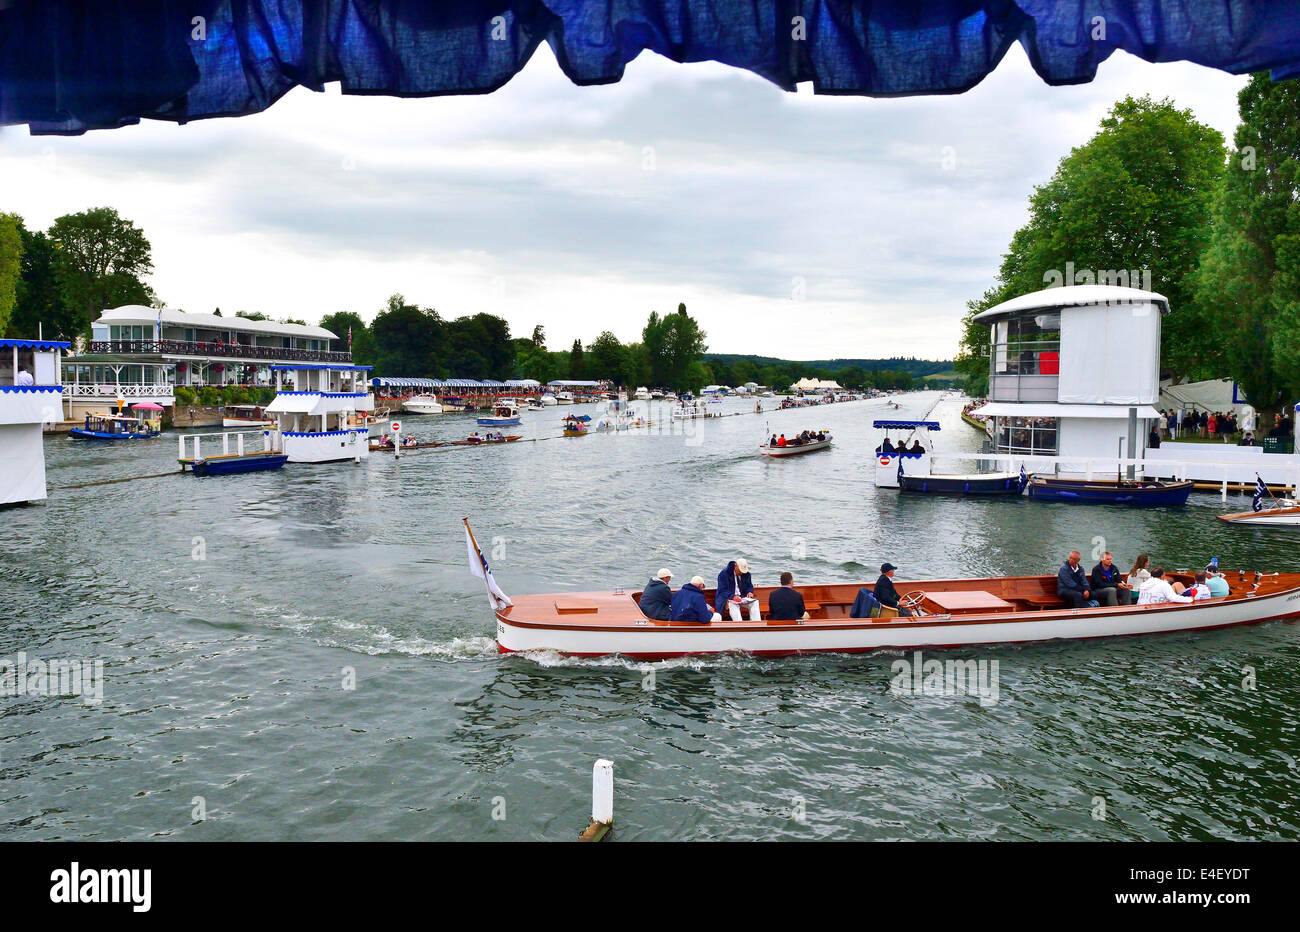 Umpires launches changing over between races at the 175th Henley Royal Regatta One to the dock the other to the - Stock Image